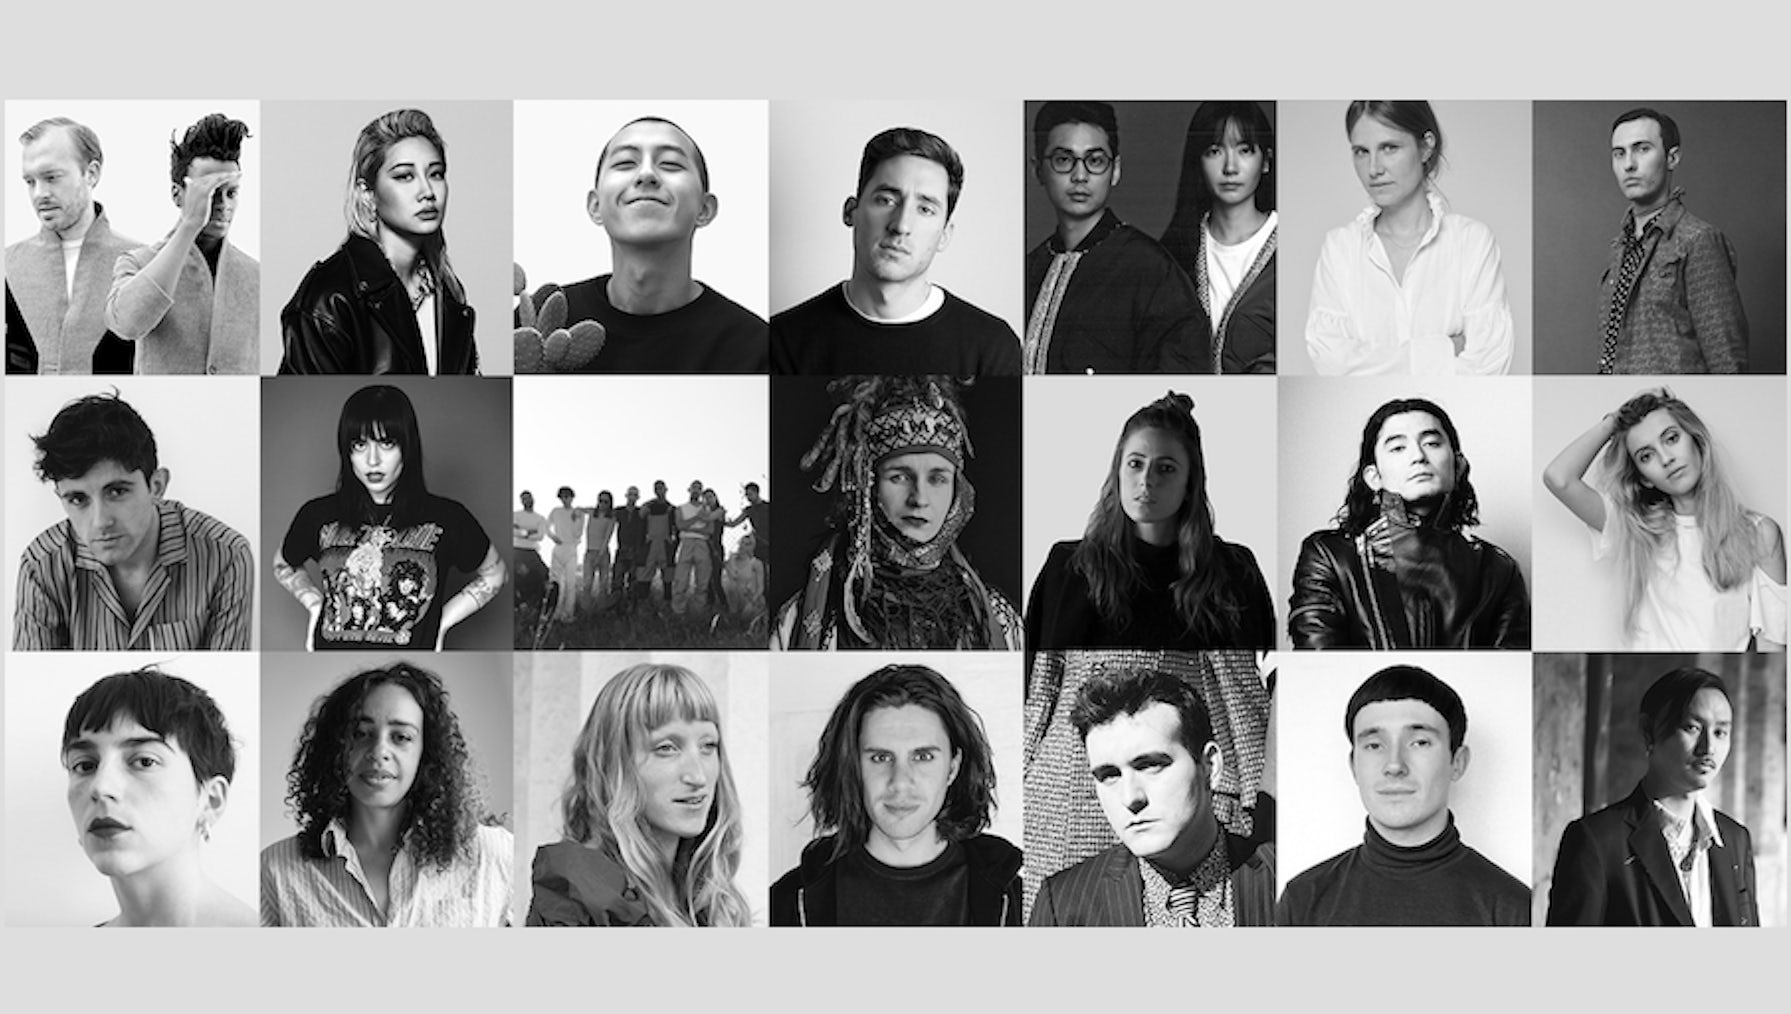 The designers shortlisted for the LVMH Prize | Source: Courtesy